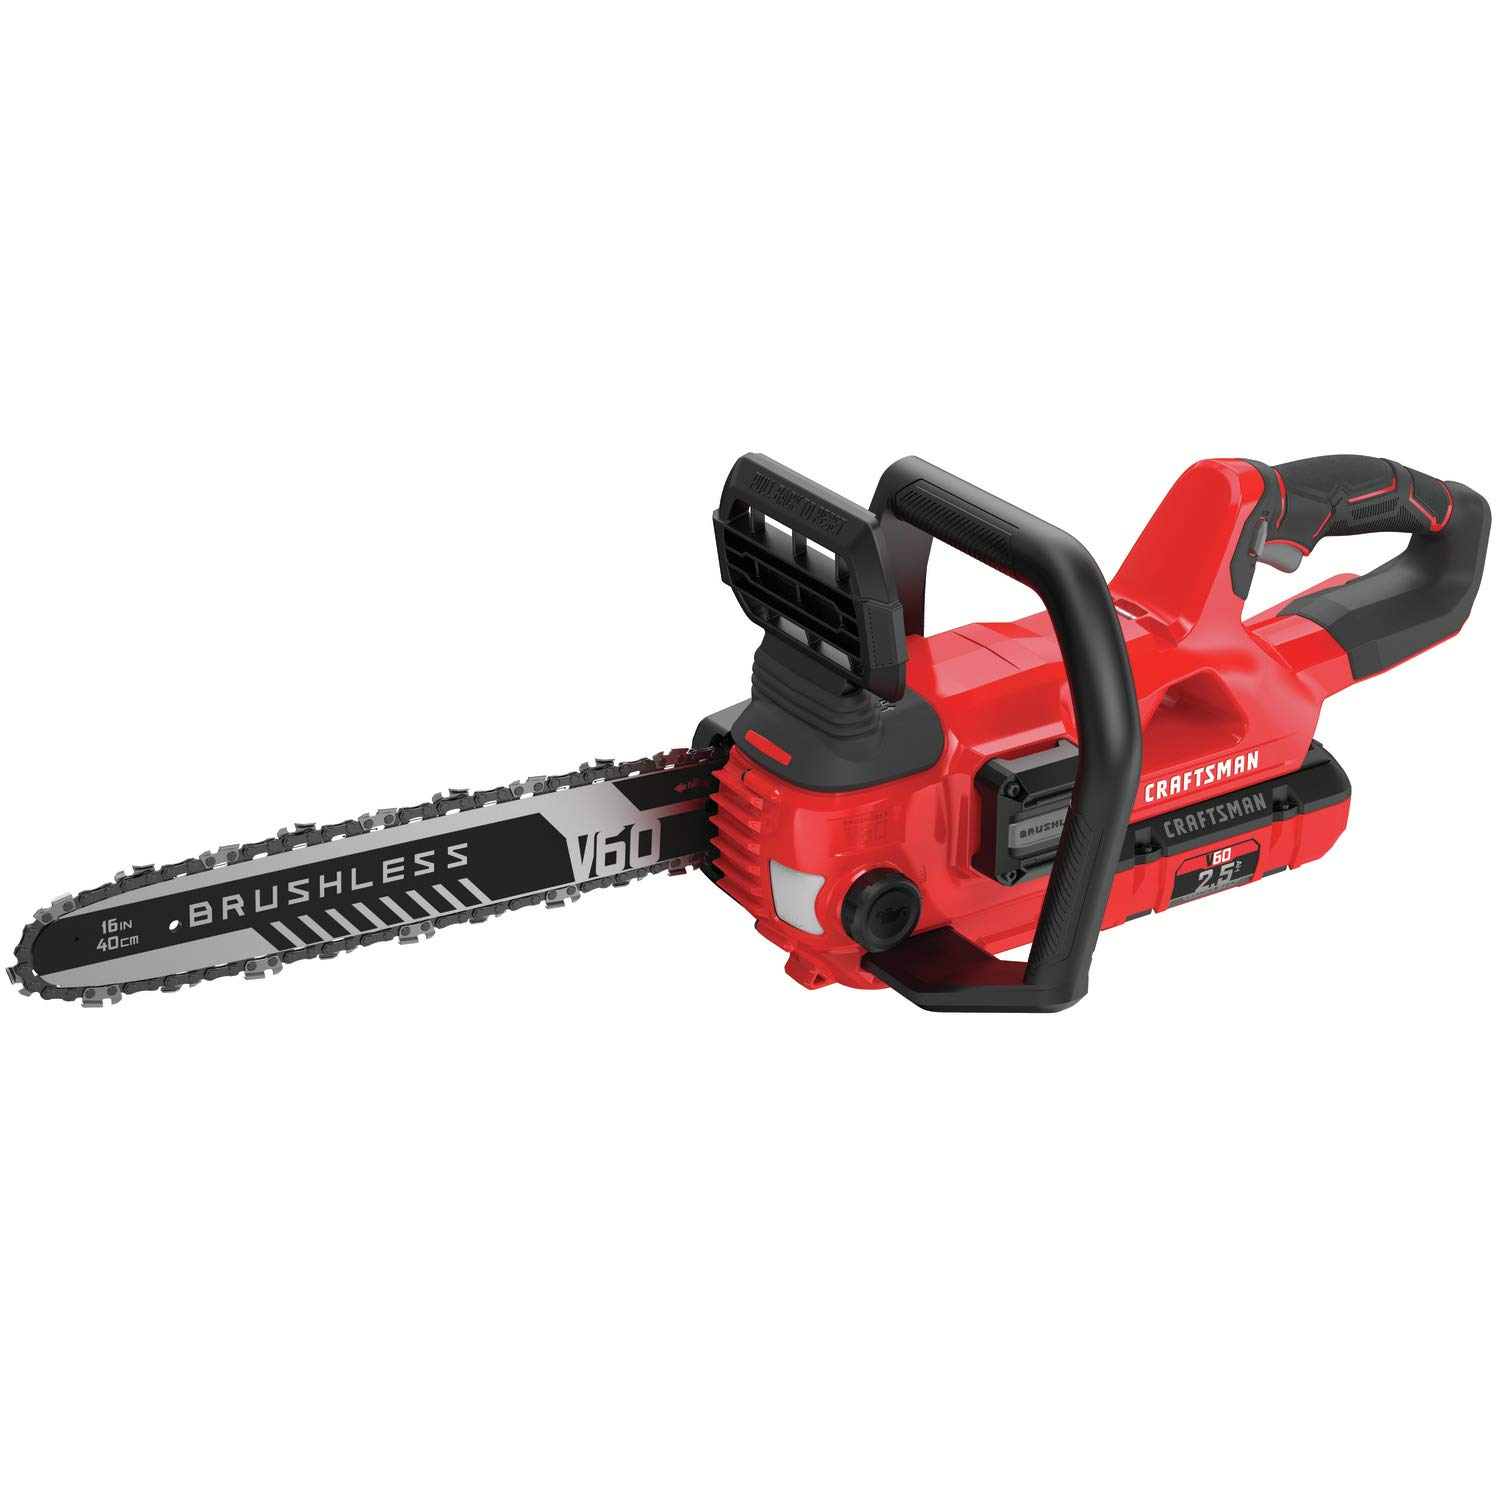 Craftsman CMCCS660E1 Chainsaws product image 9